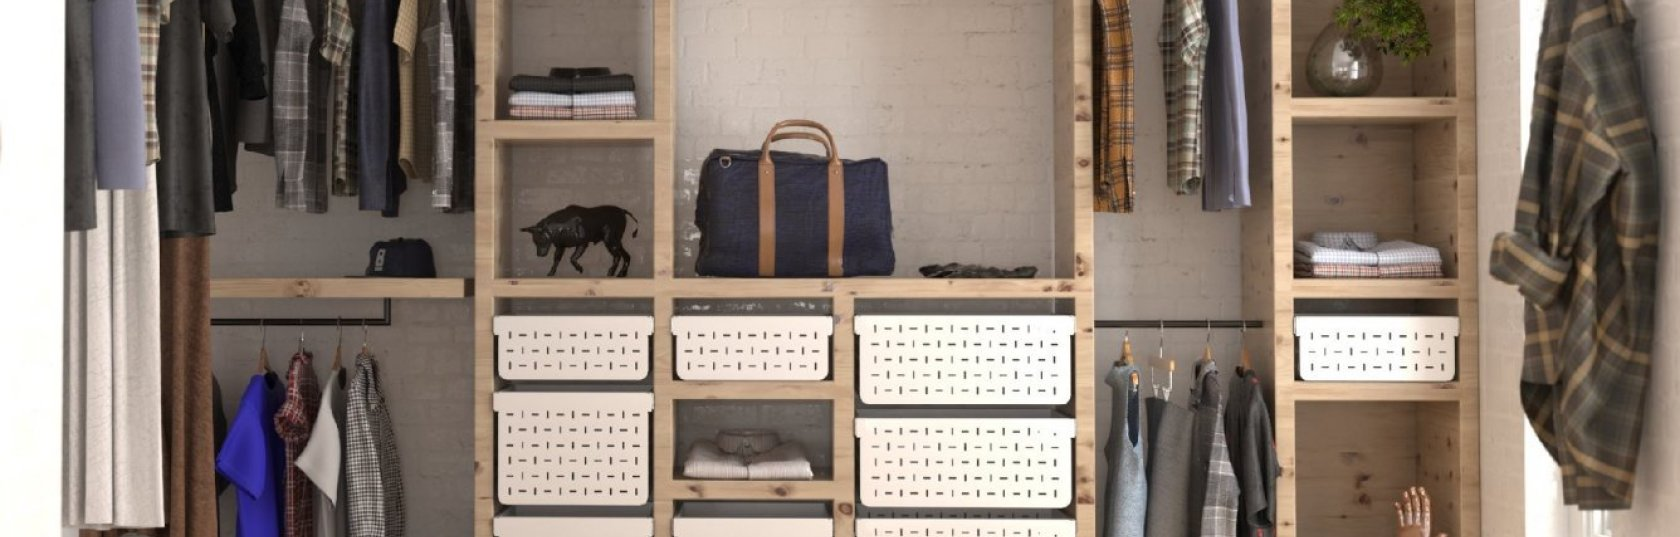 An evolution of basket storage: from traditional wicker to modern steel